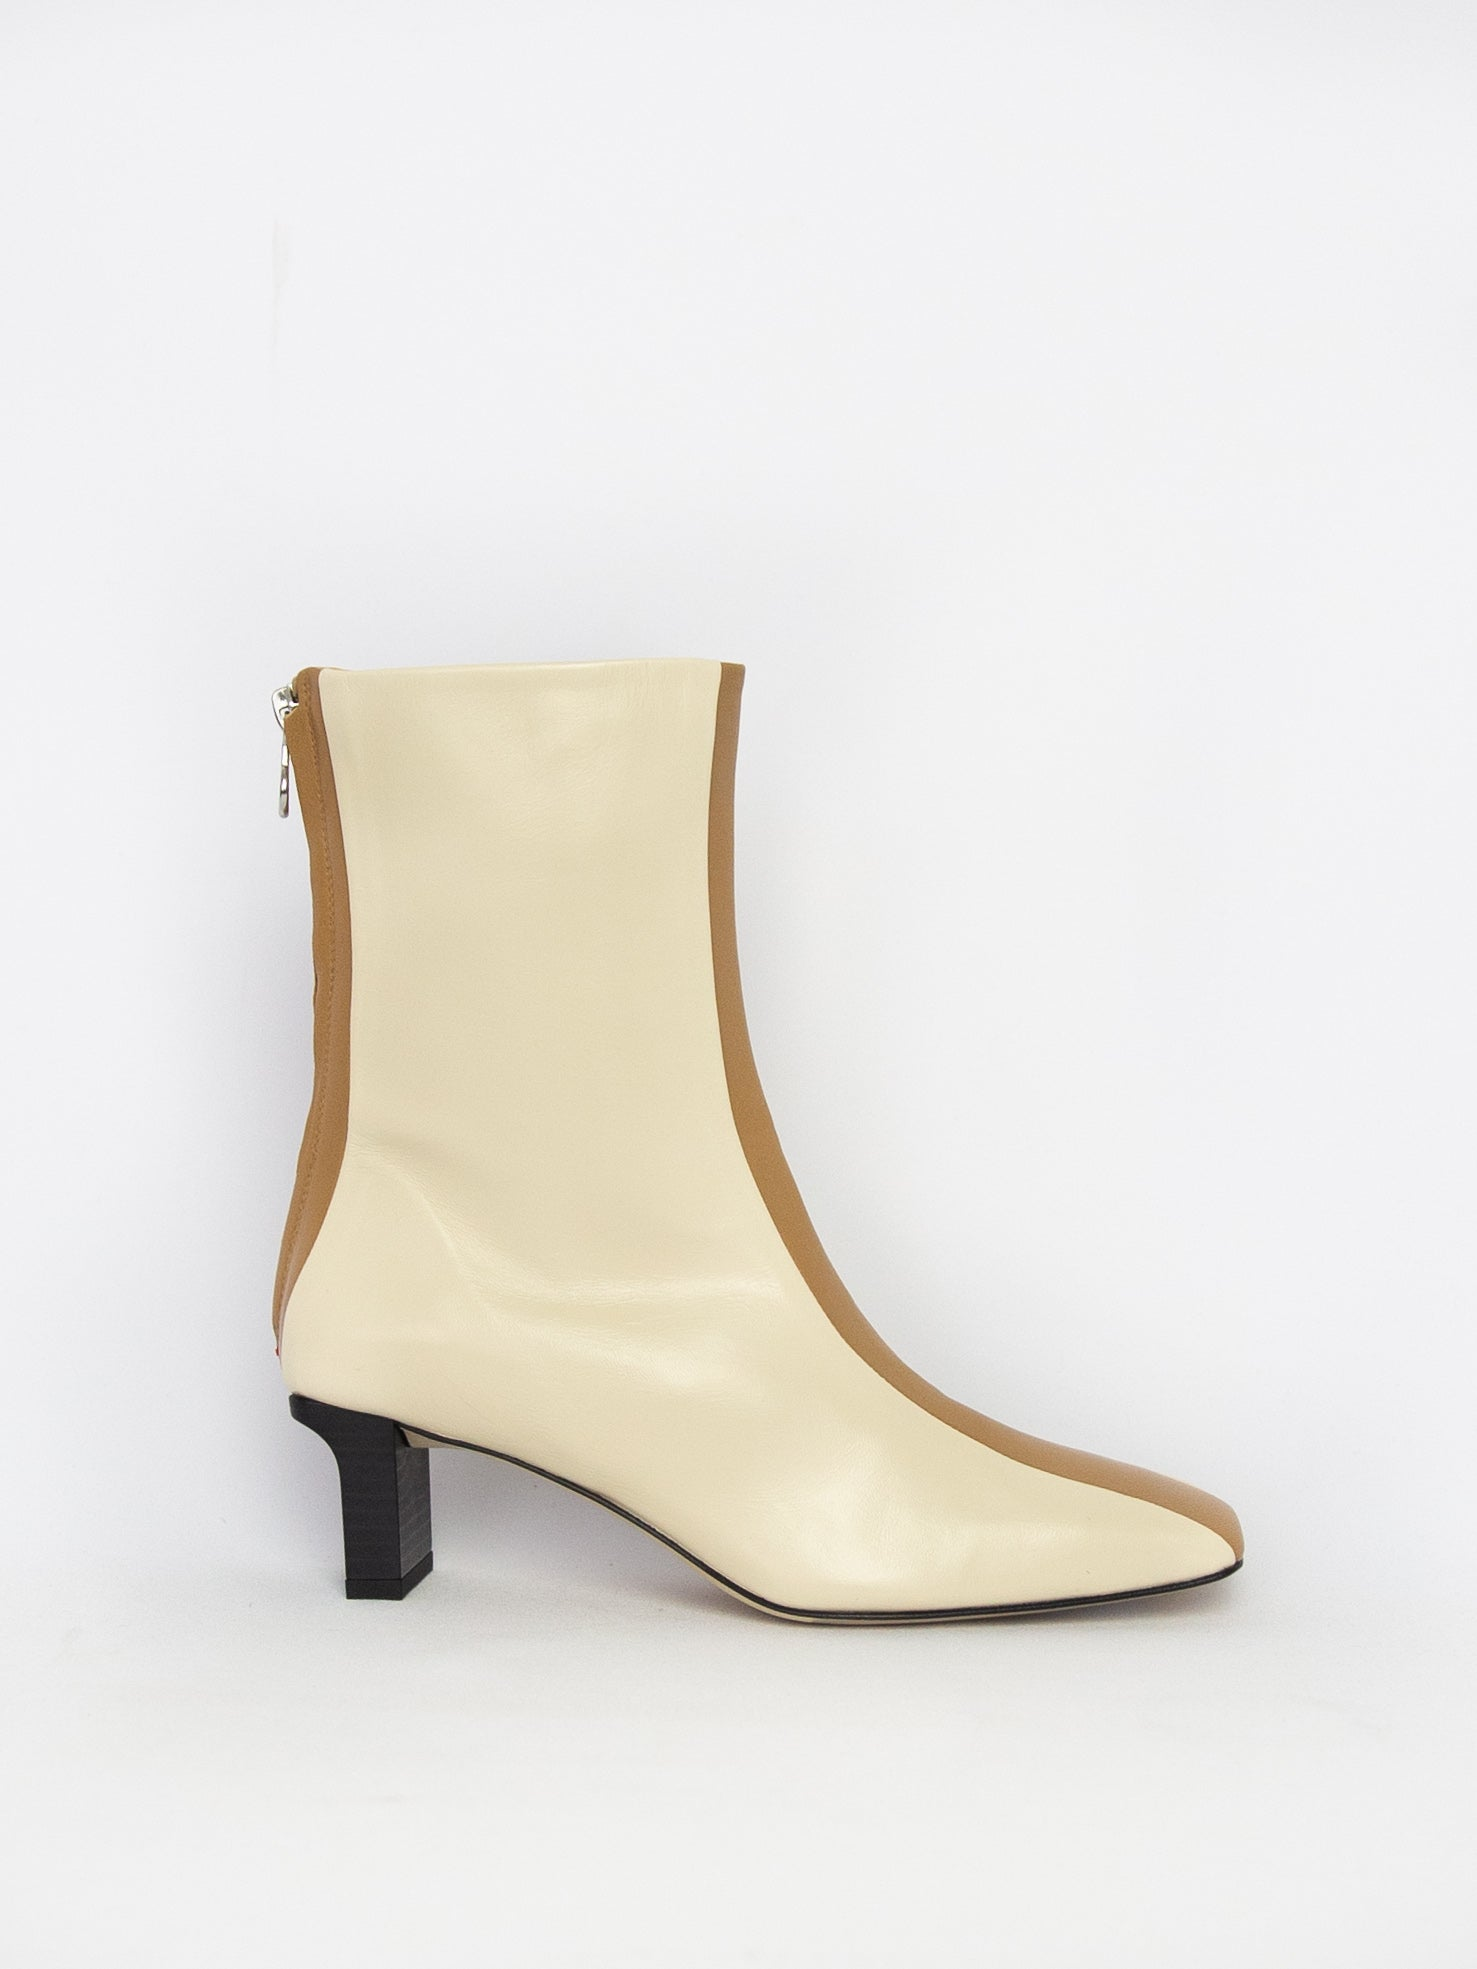 Molly Nappa Leather Boot - Creamy/Hazelnut